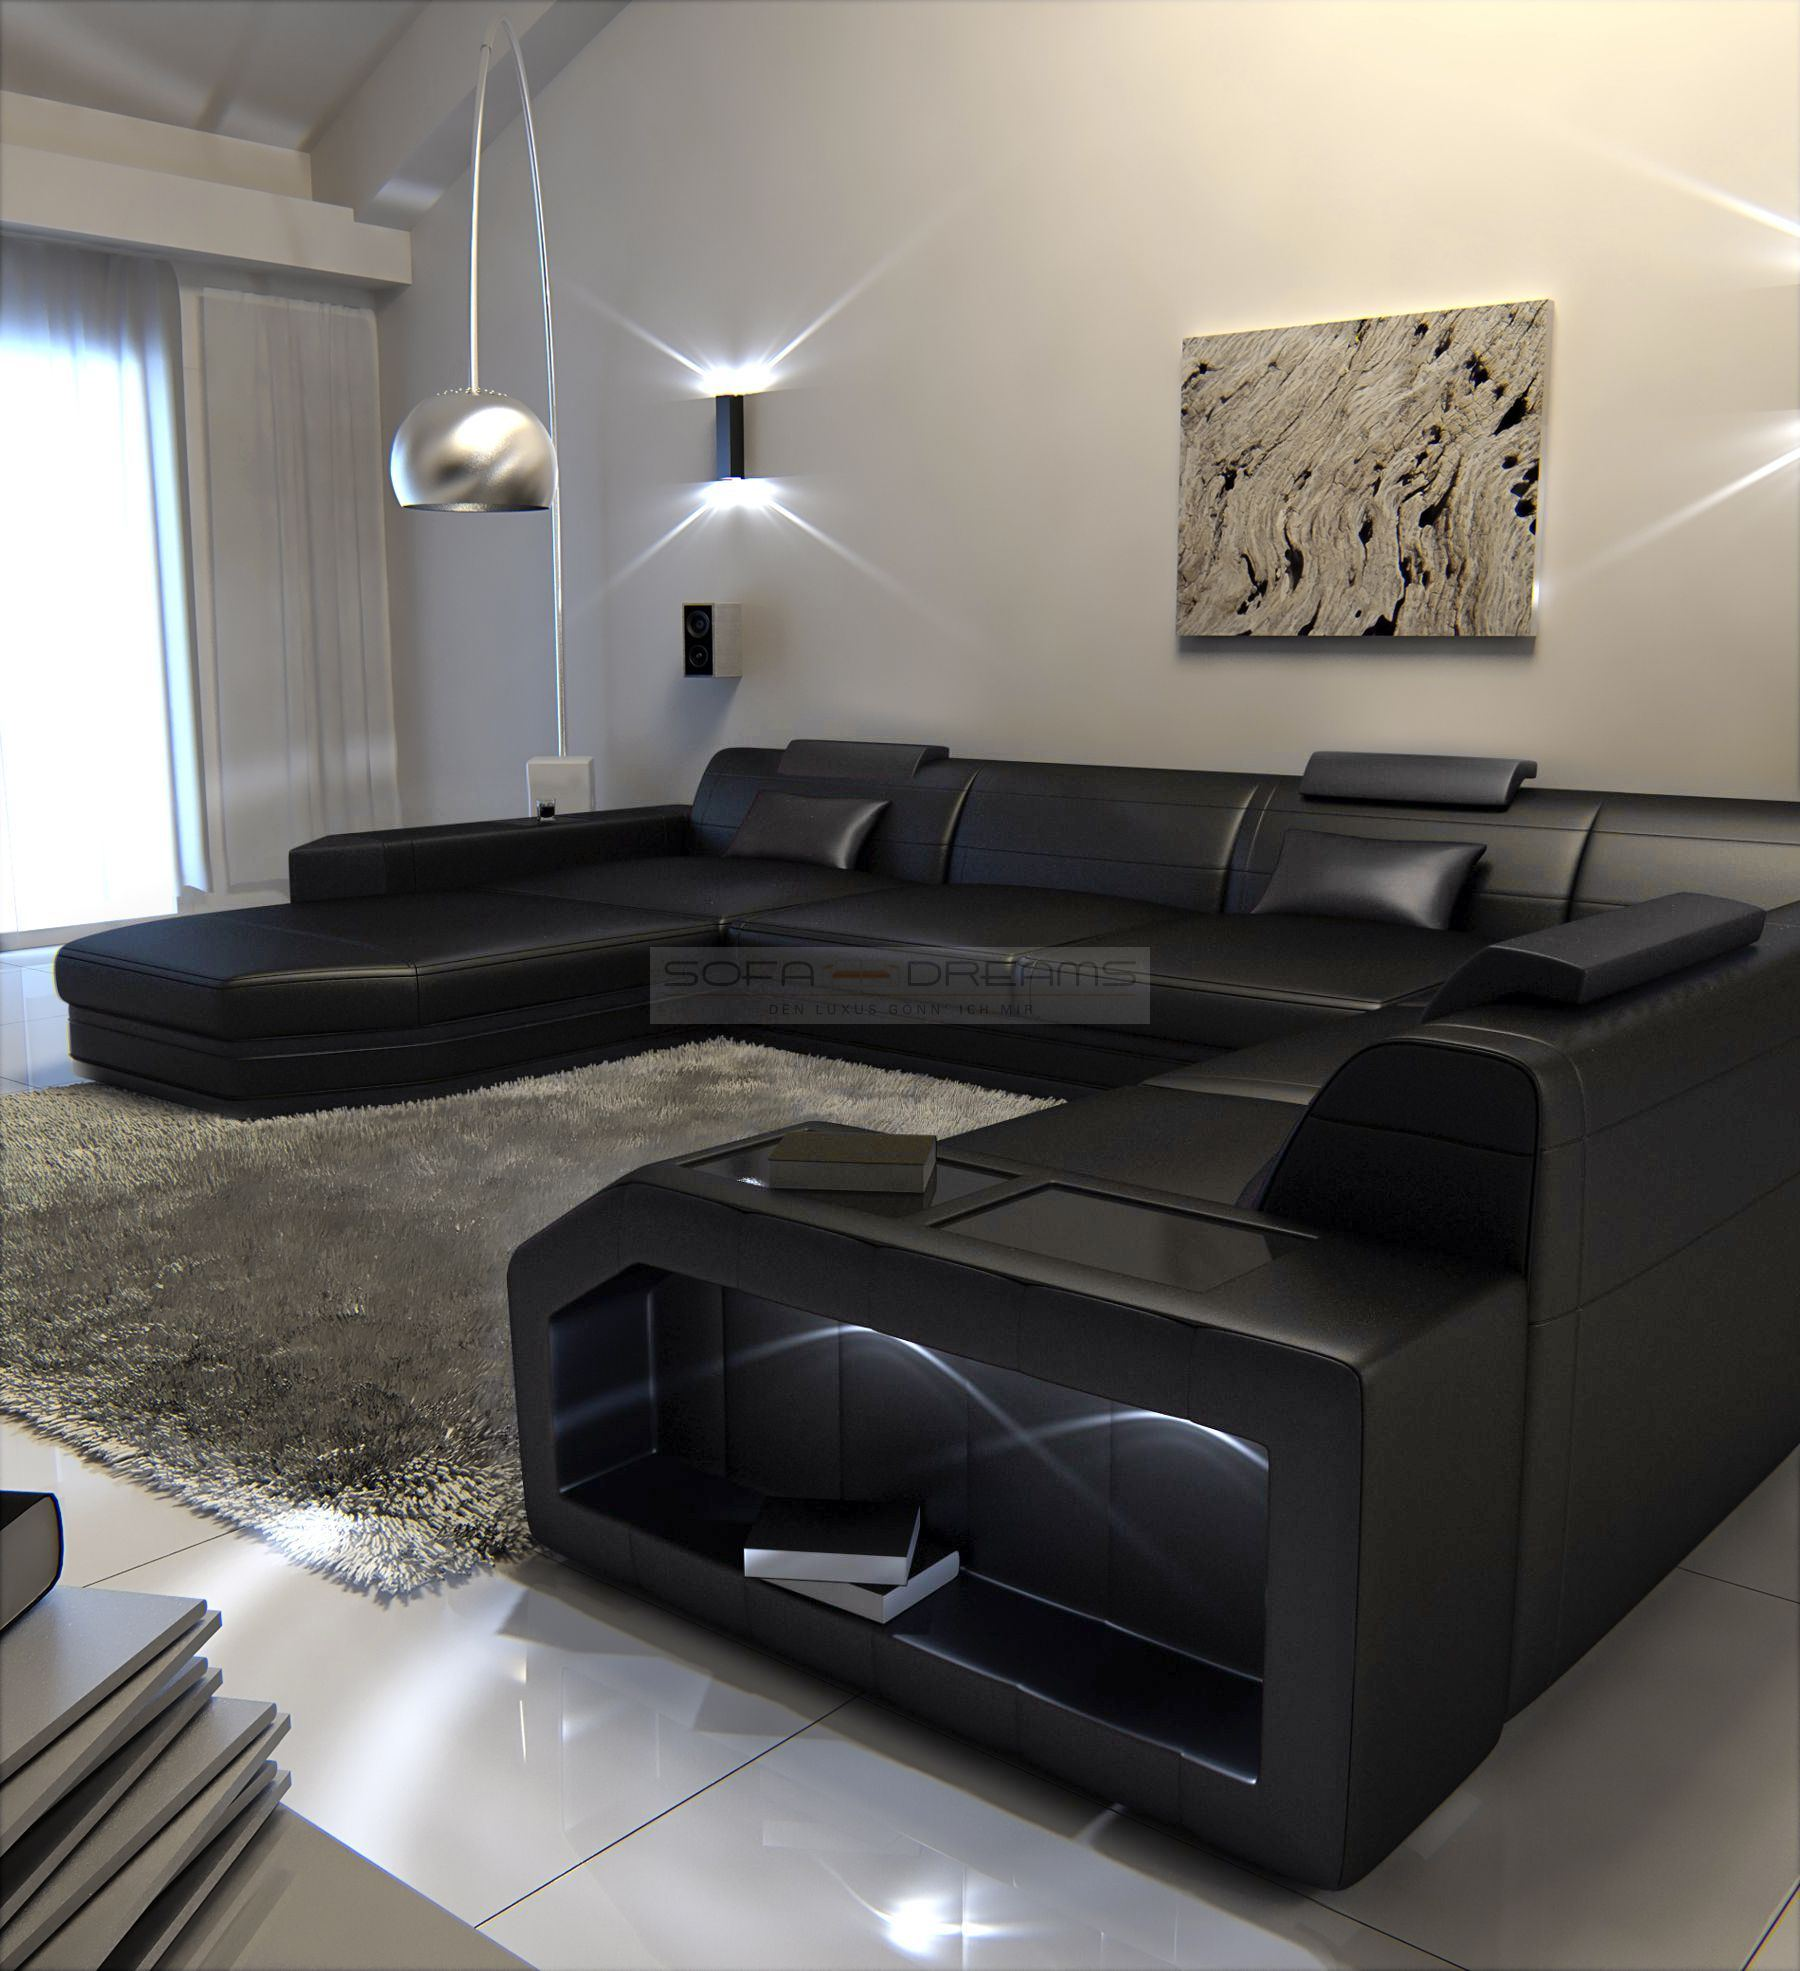 eckcouch mega wohlandschaft couch prato xxl ledersofa mit led beleuchtung ebay. Black Bedroom Furniture Sets. Home Design Ideas